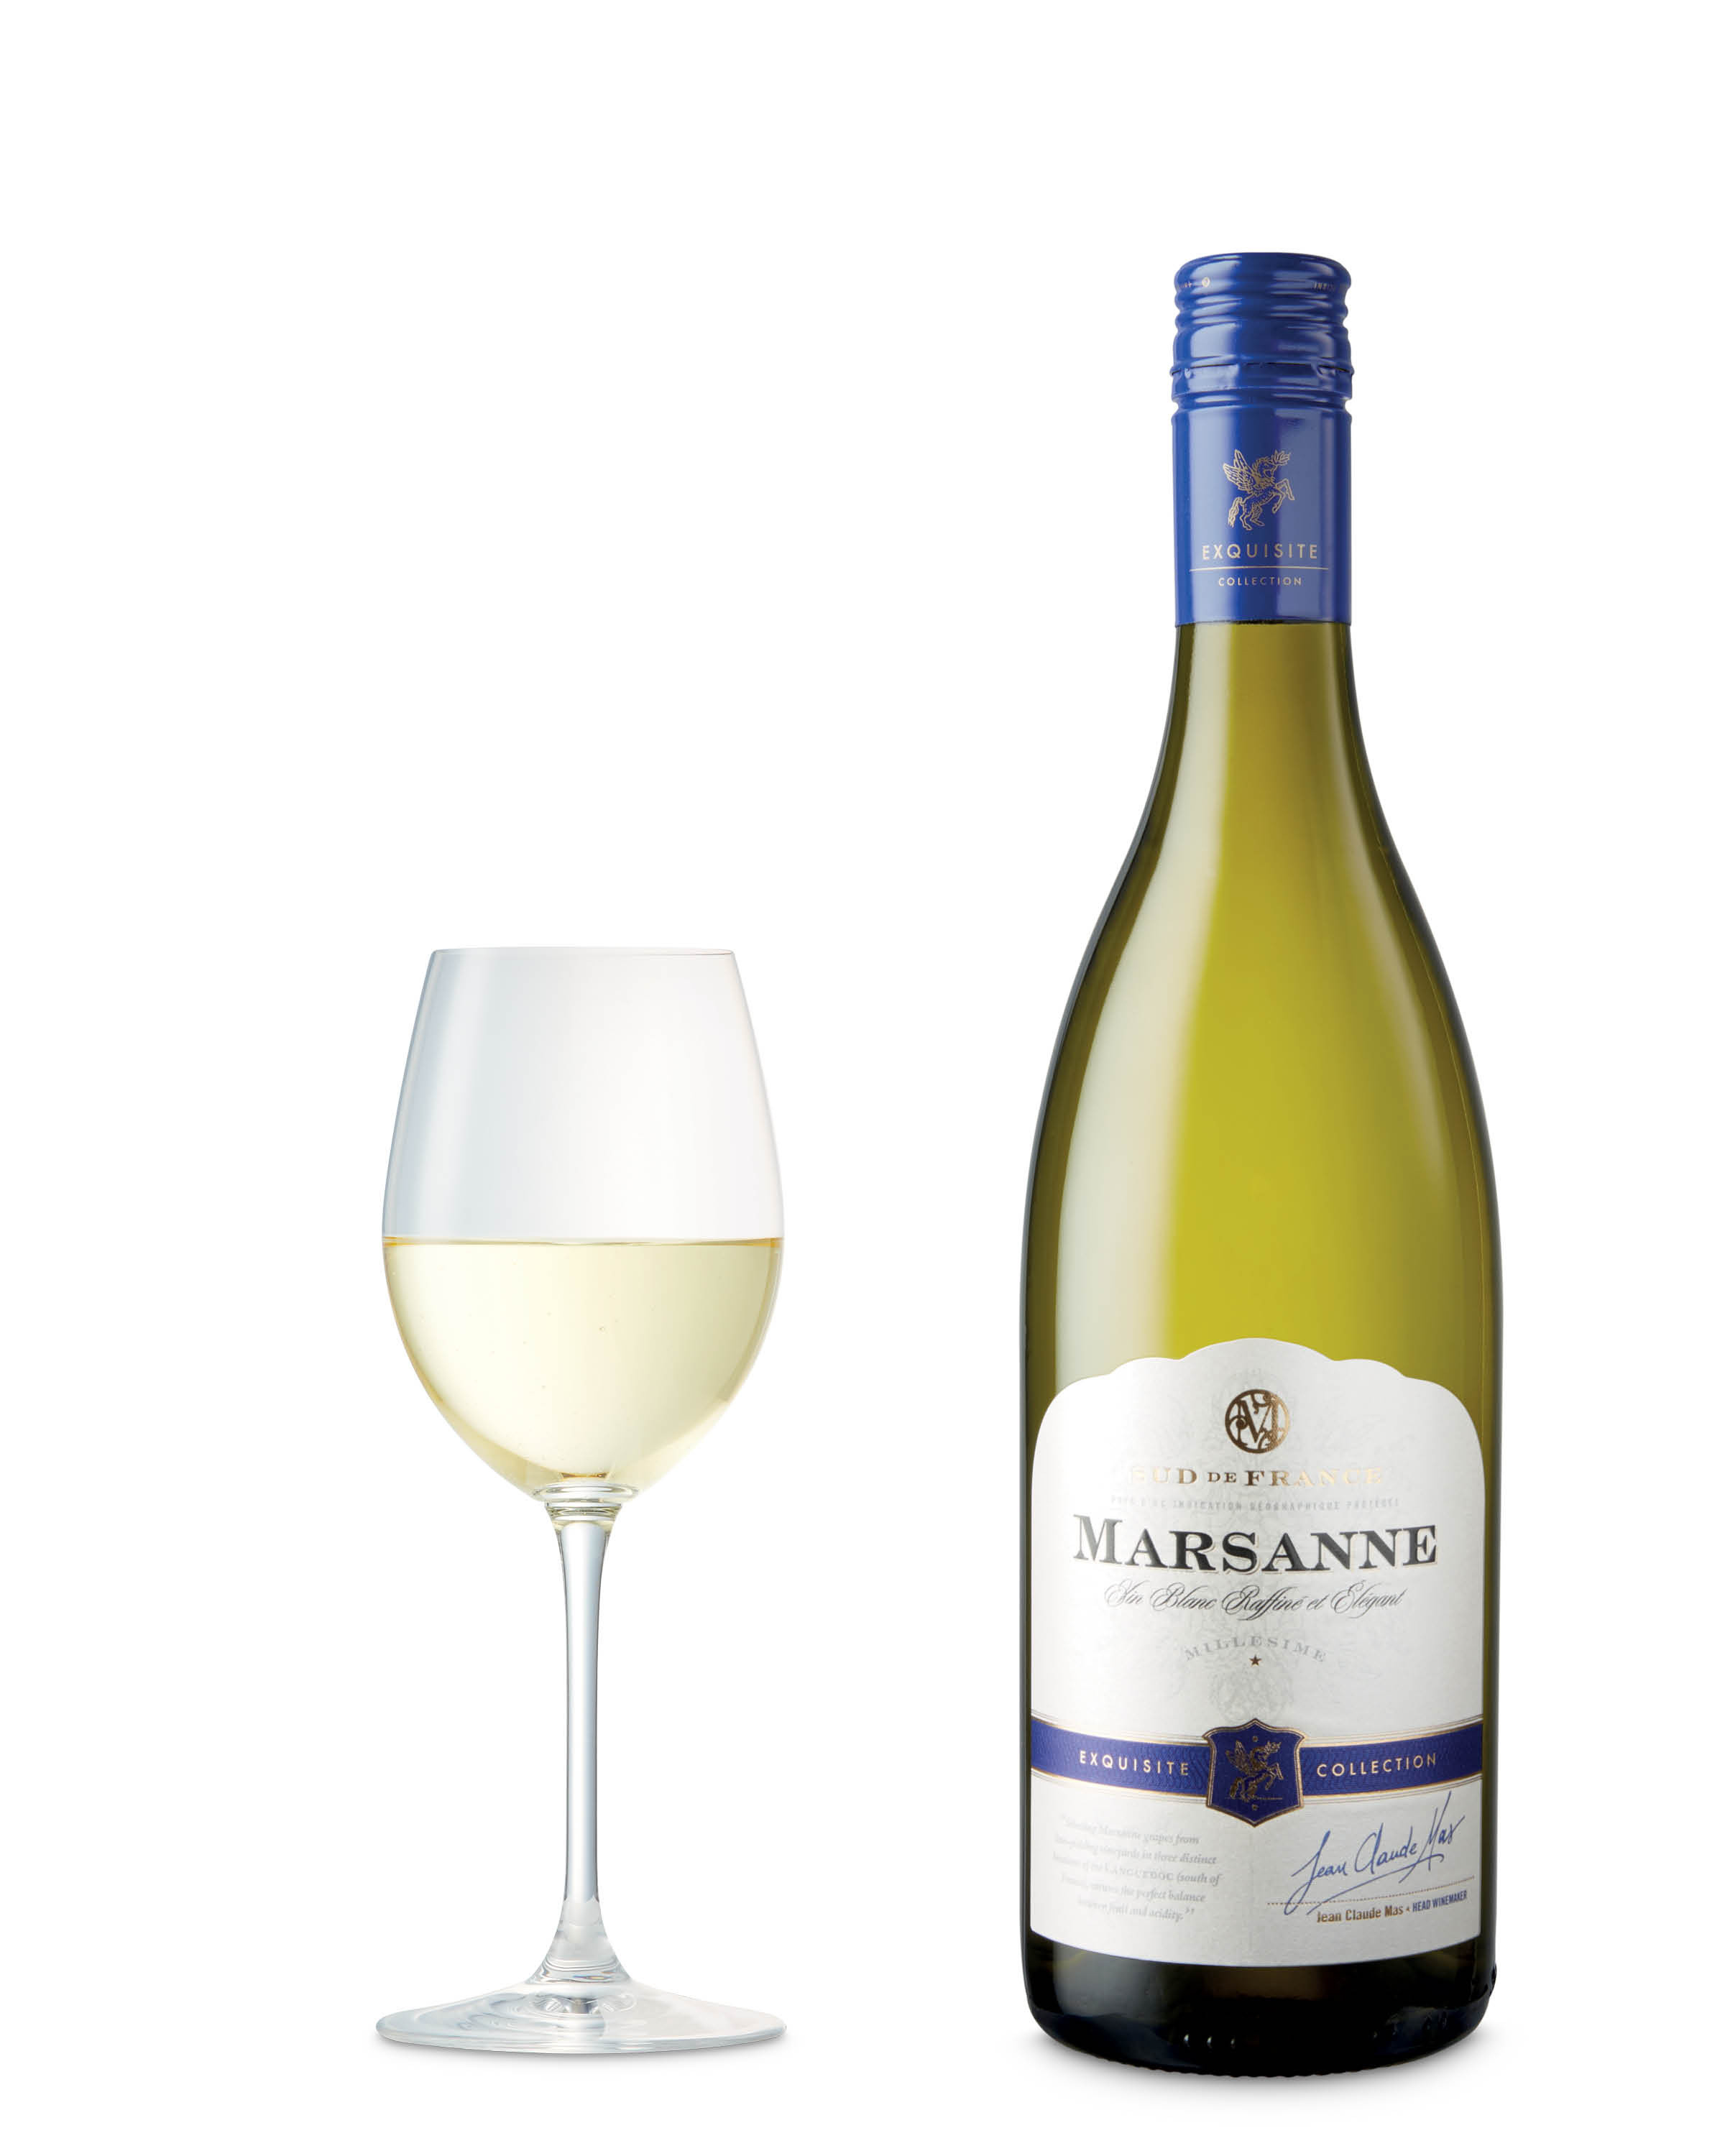 Exquisite Collection Marsanne 2018